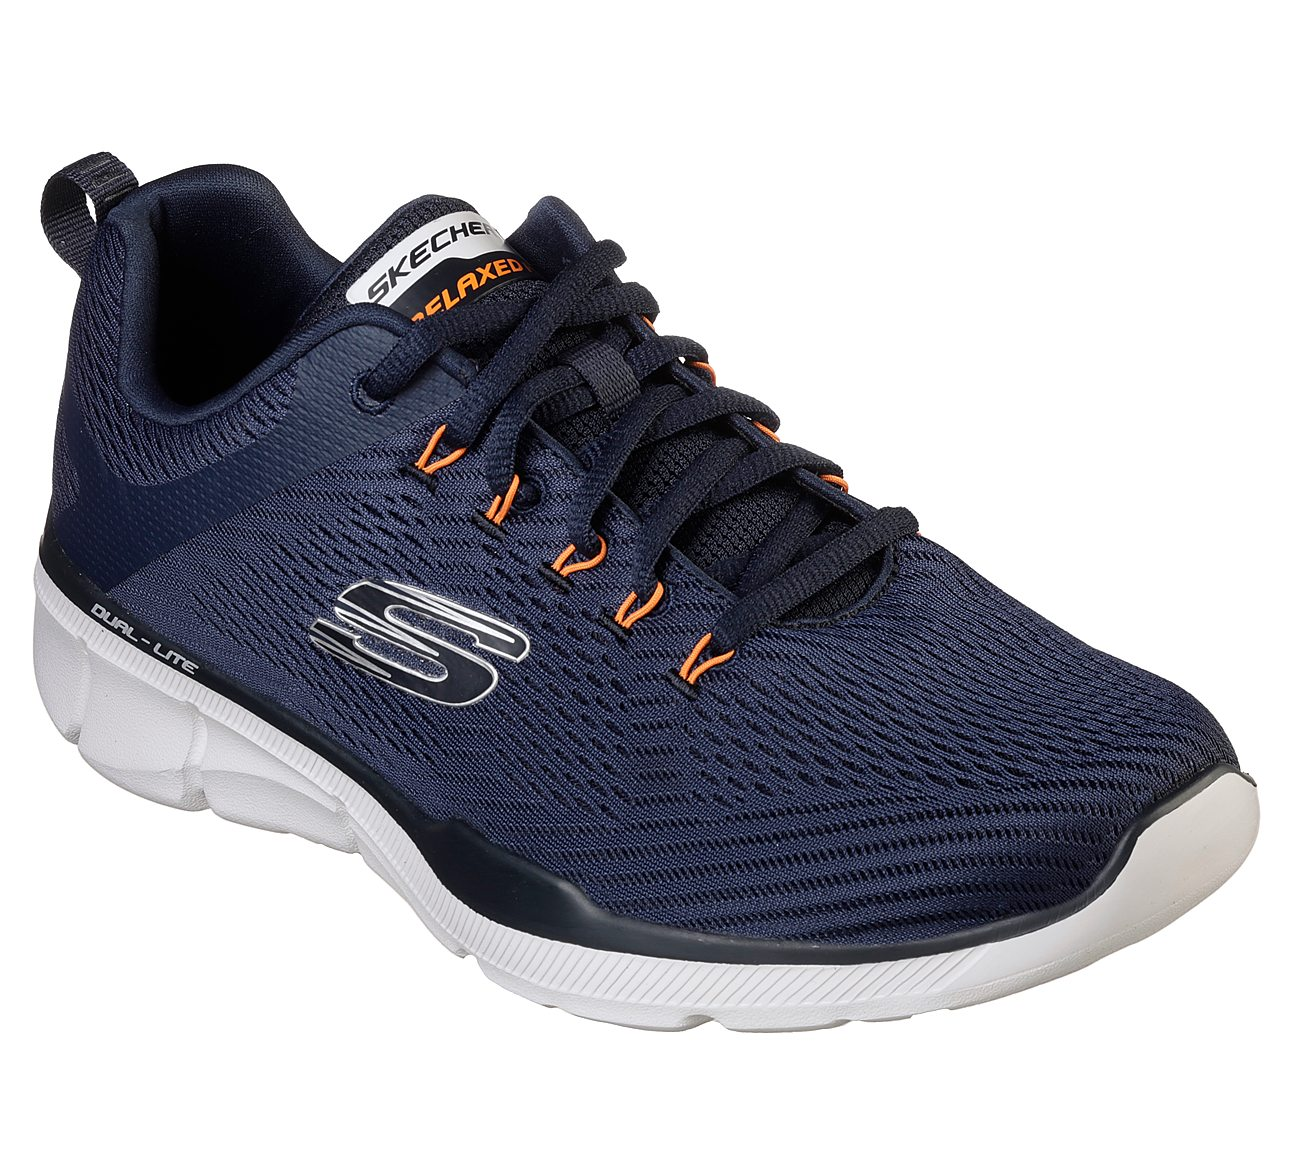 a5a0914c6fcb Buy SKECHERS Relaxed Fit  Equalizer 3.0 Relaxed Fit Shoes only  70.00